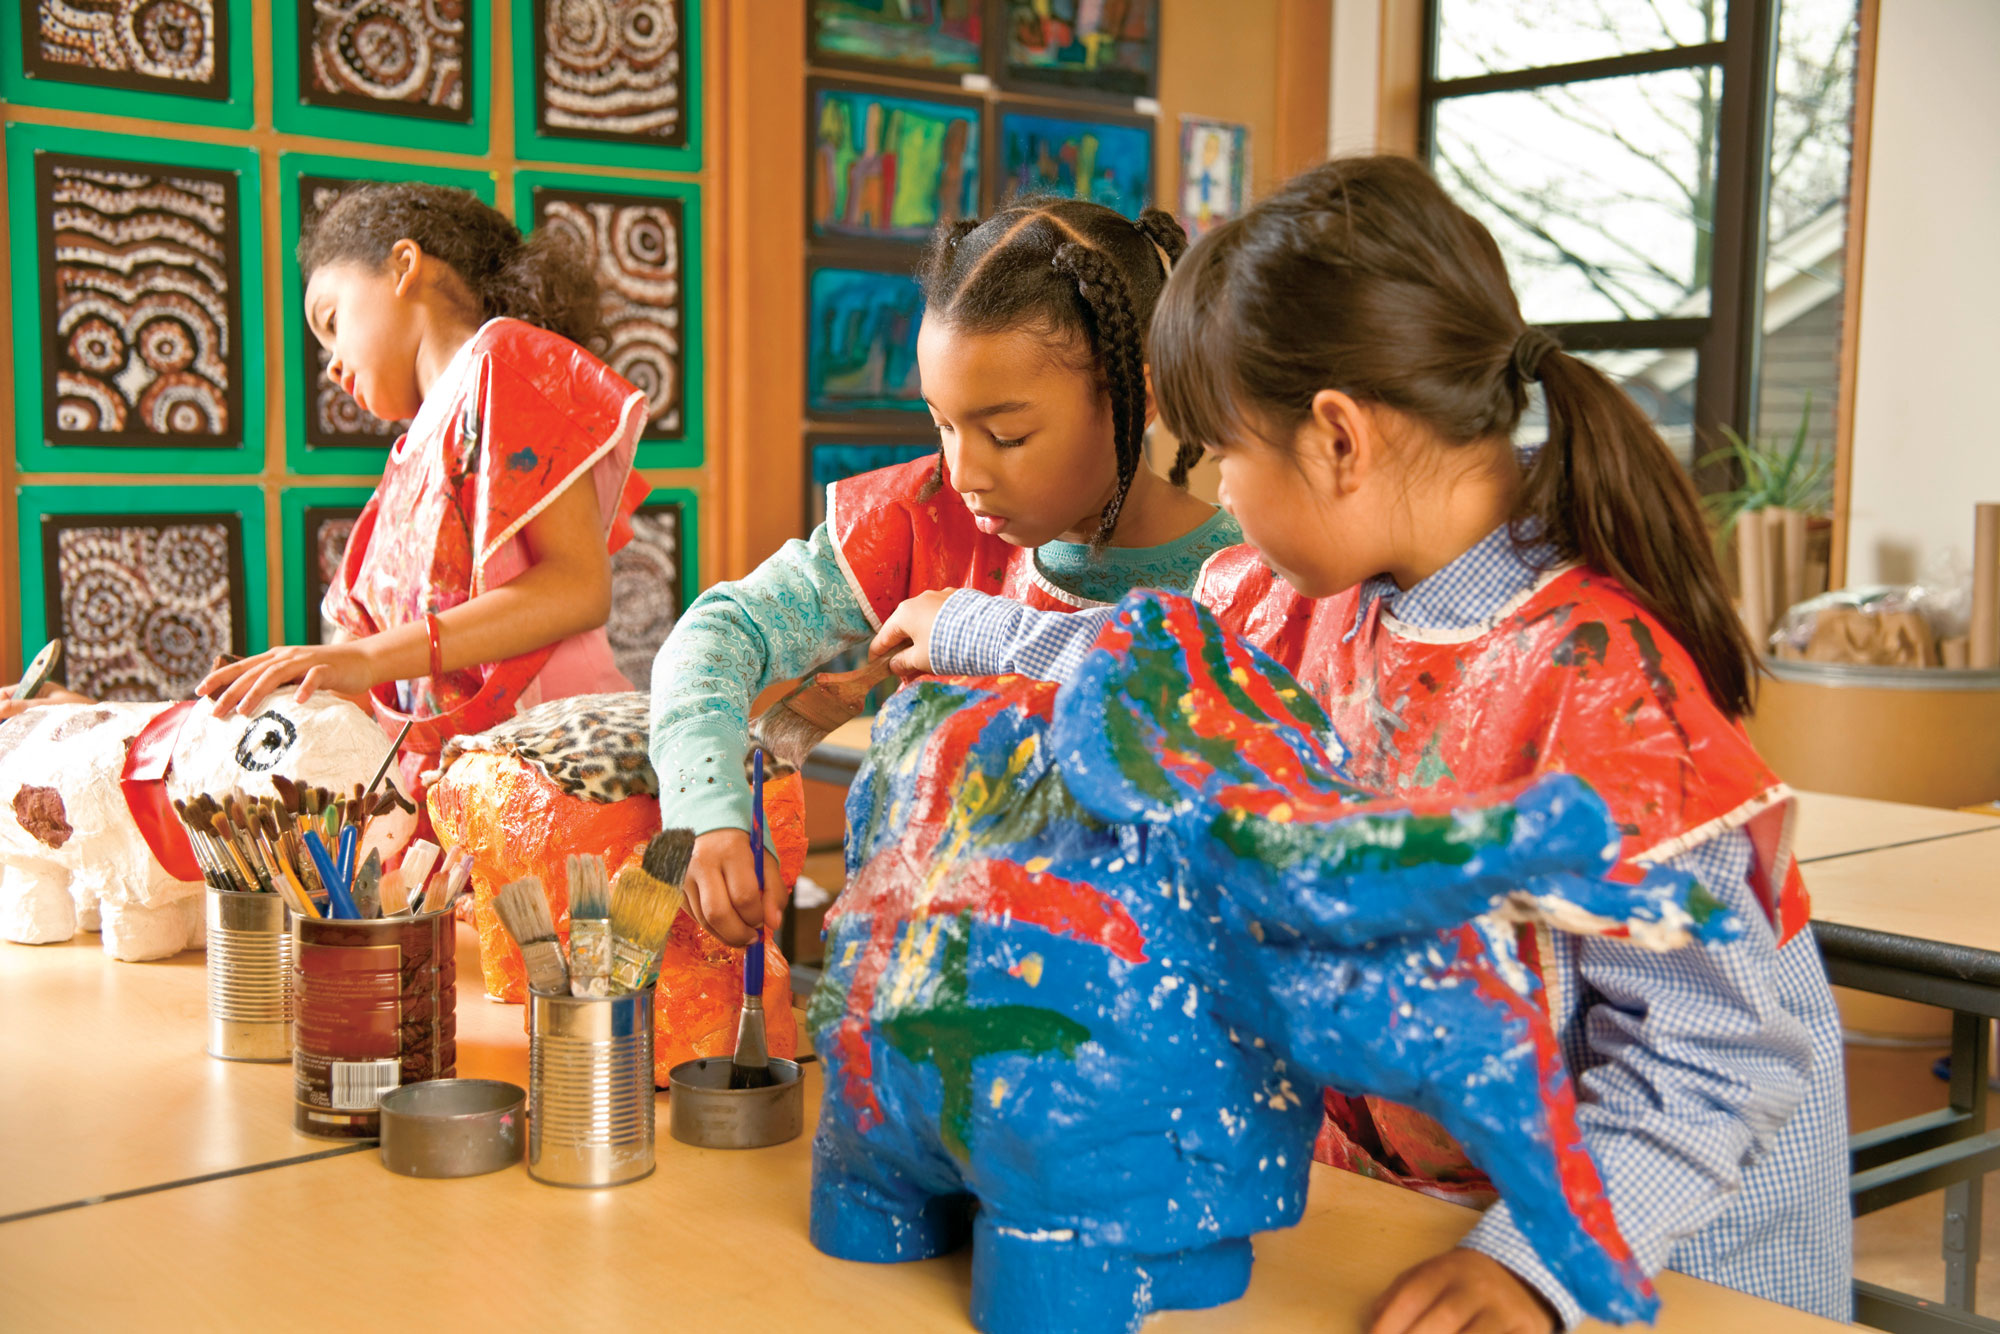 Group of children painting with coloring paints in art class.